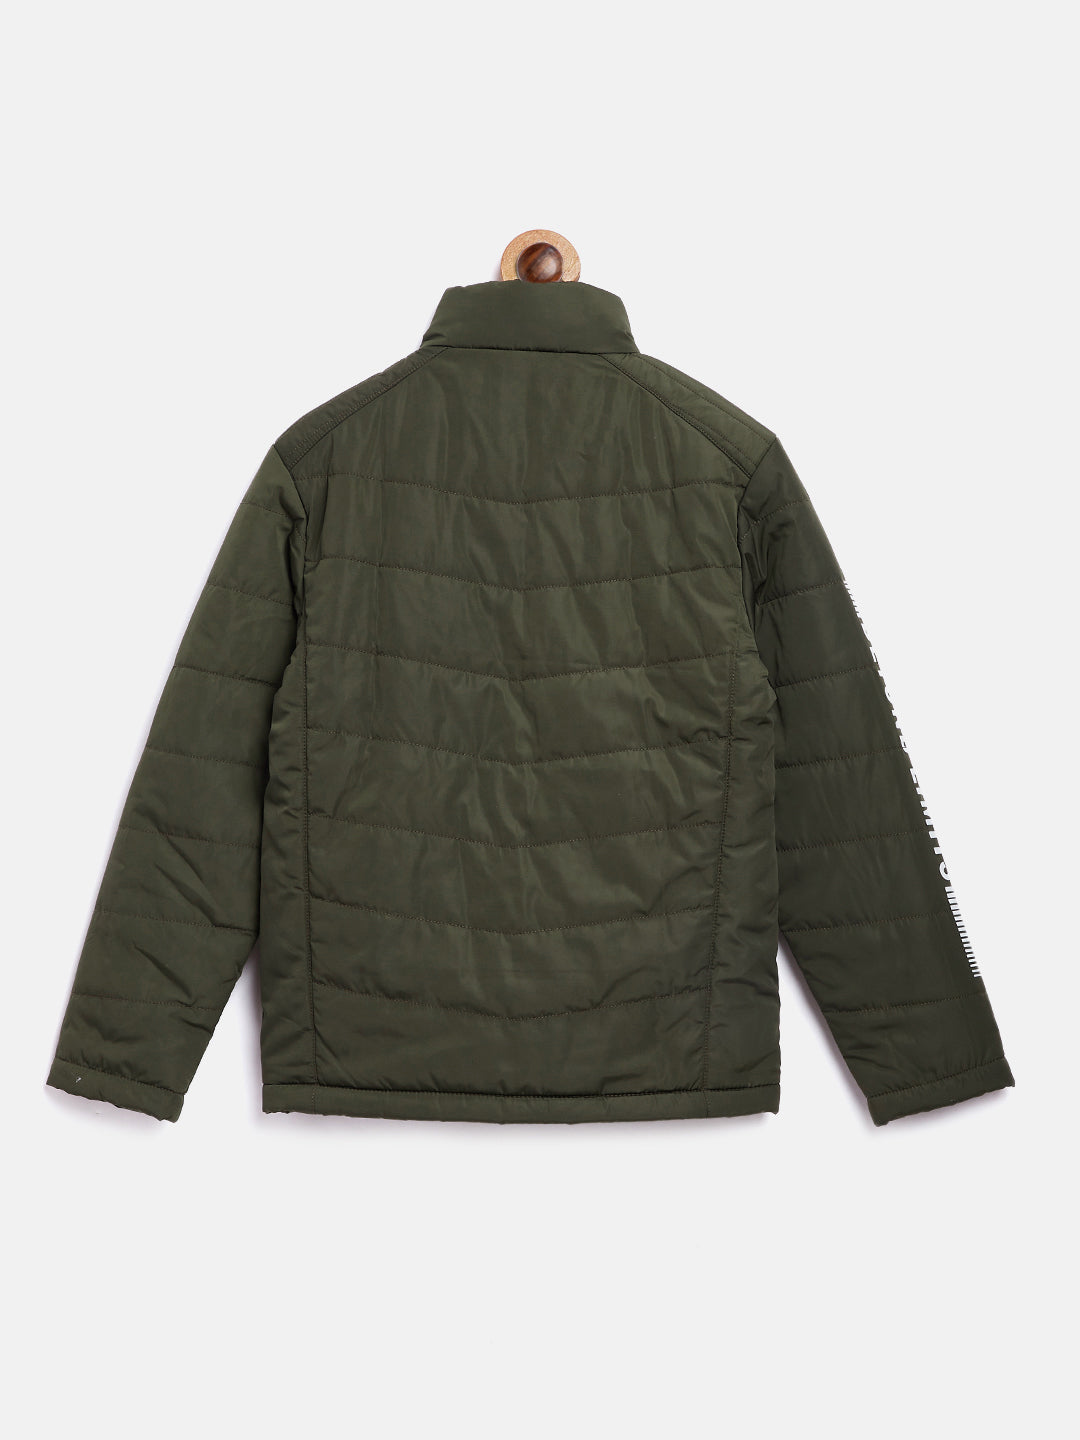 Octave Apparels Olive Jacket for Kids